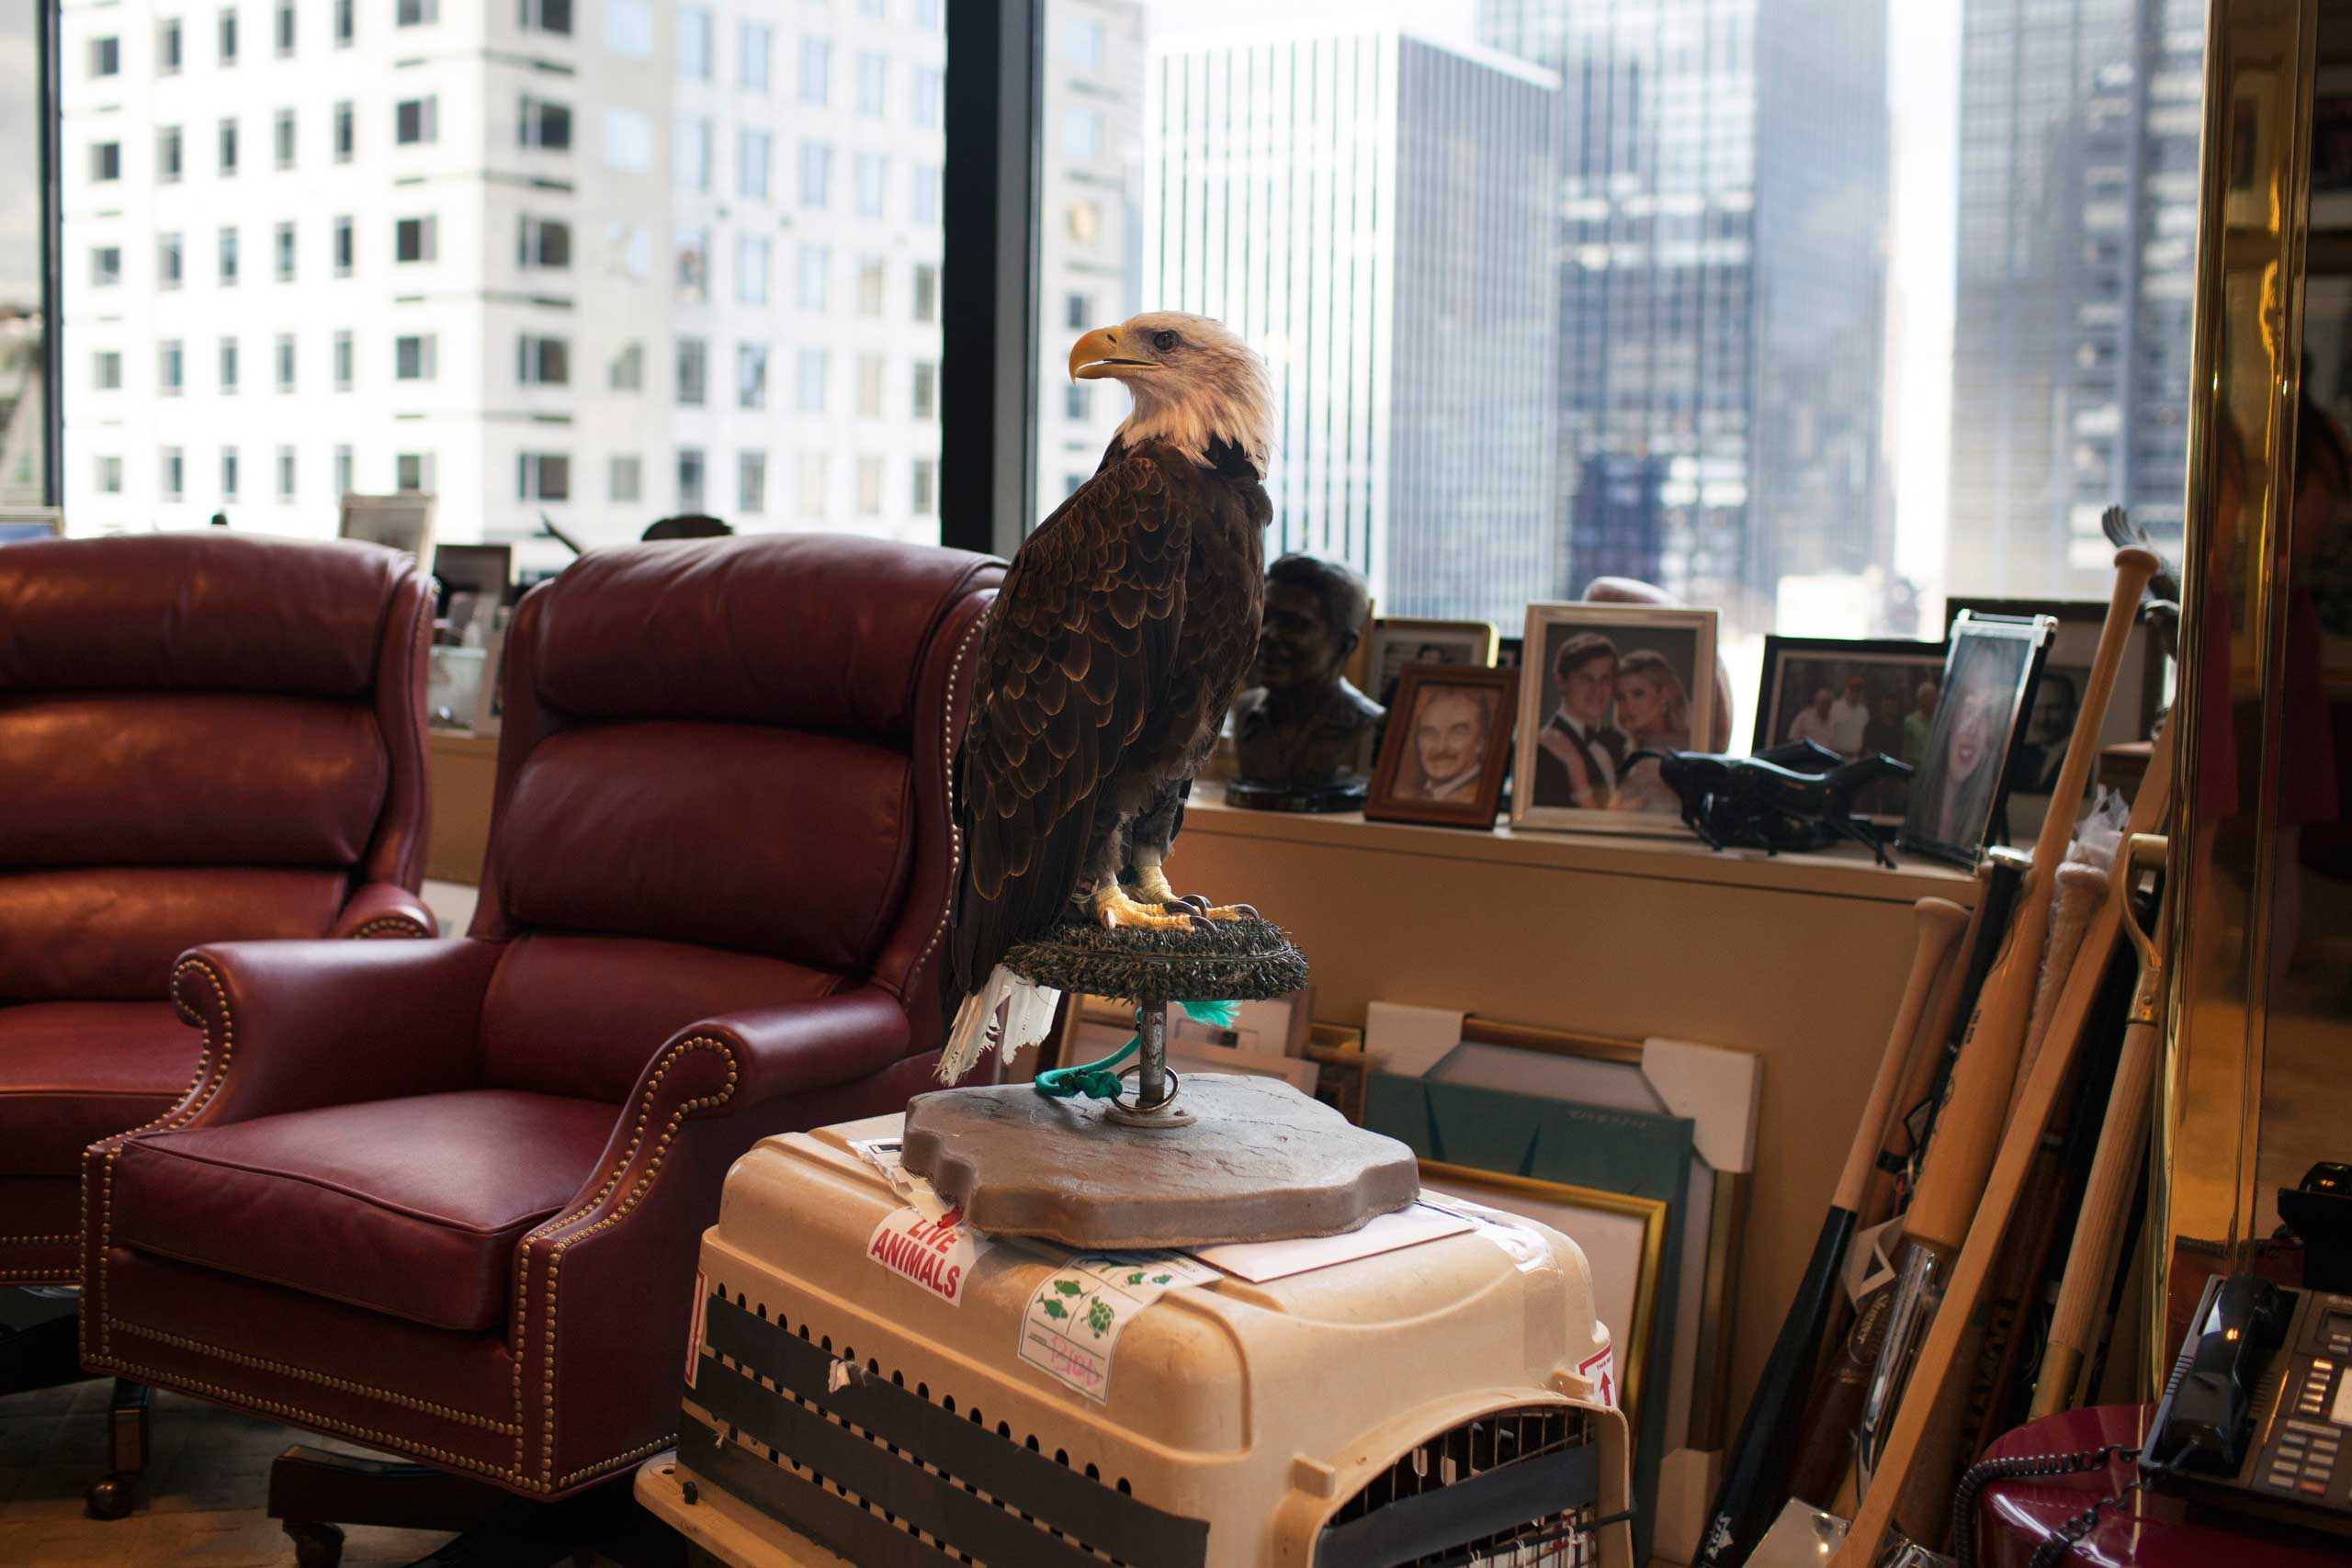 Uncle Sam, an American bald eagle, waits in Donald Trump's office in New York City.